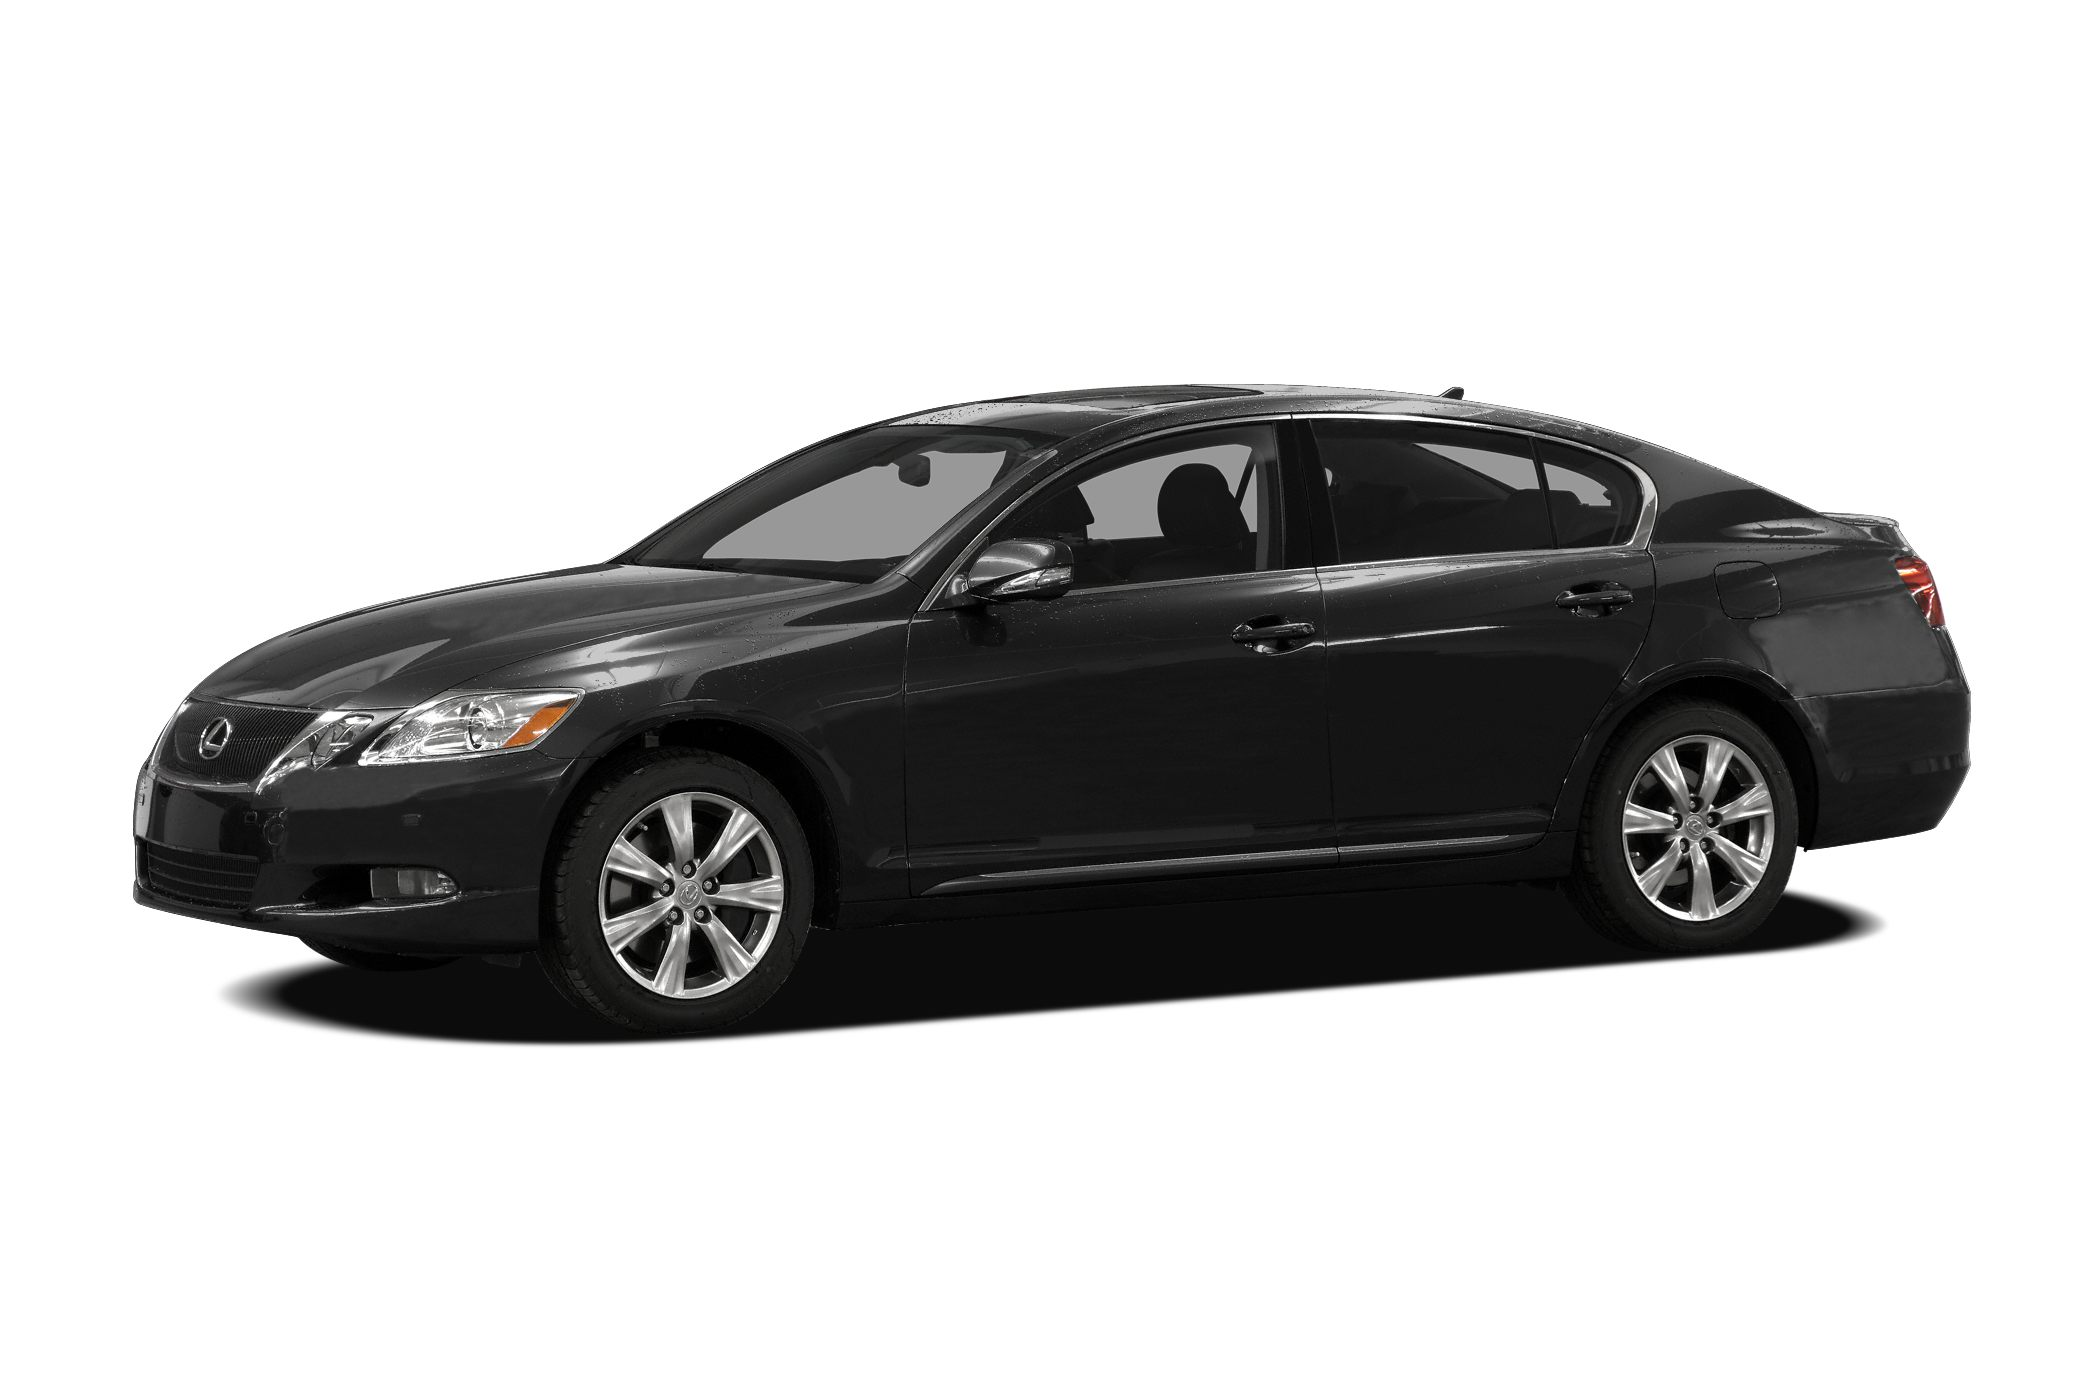 2008 Lexus GS 350 Sedan for sale in Jefferson City for $18,900 with 93,595 miles